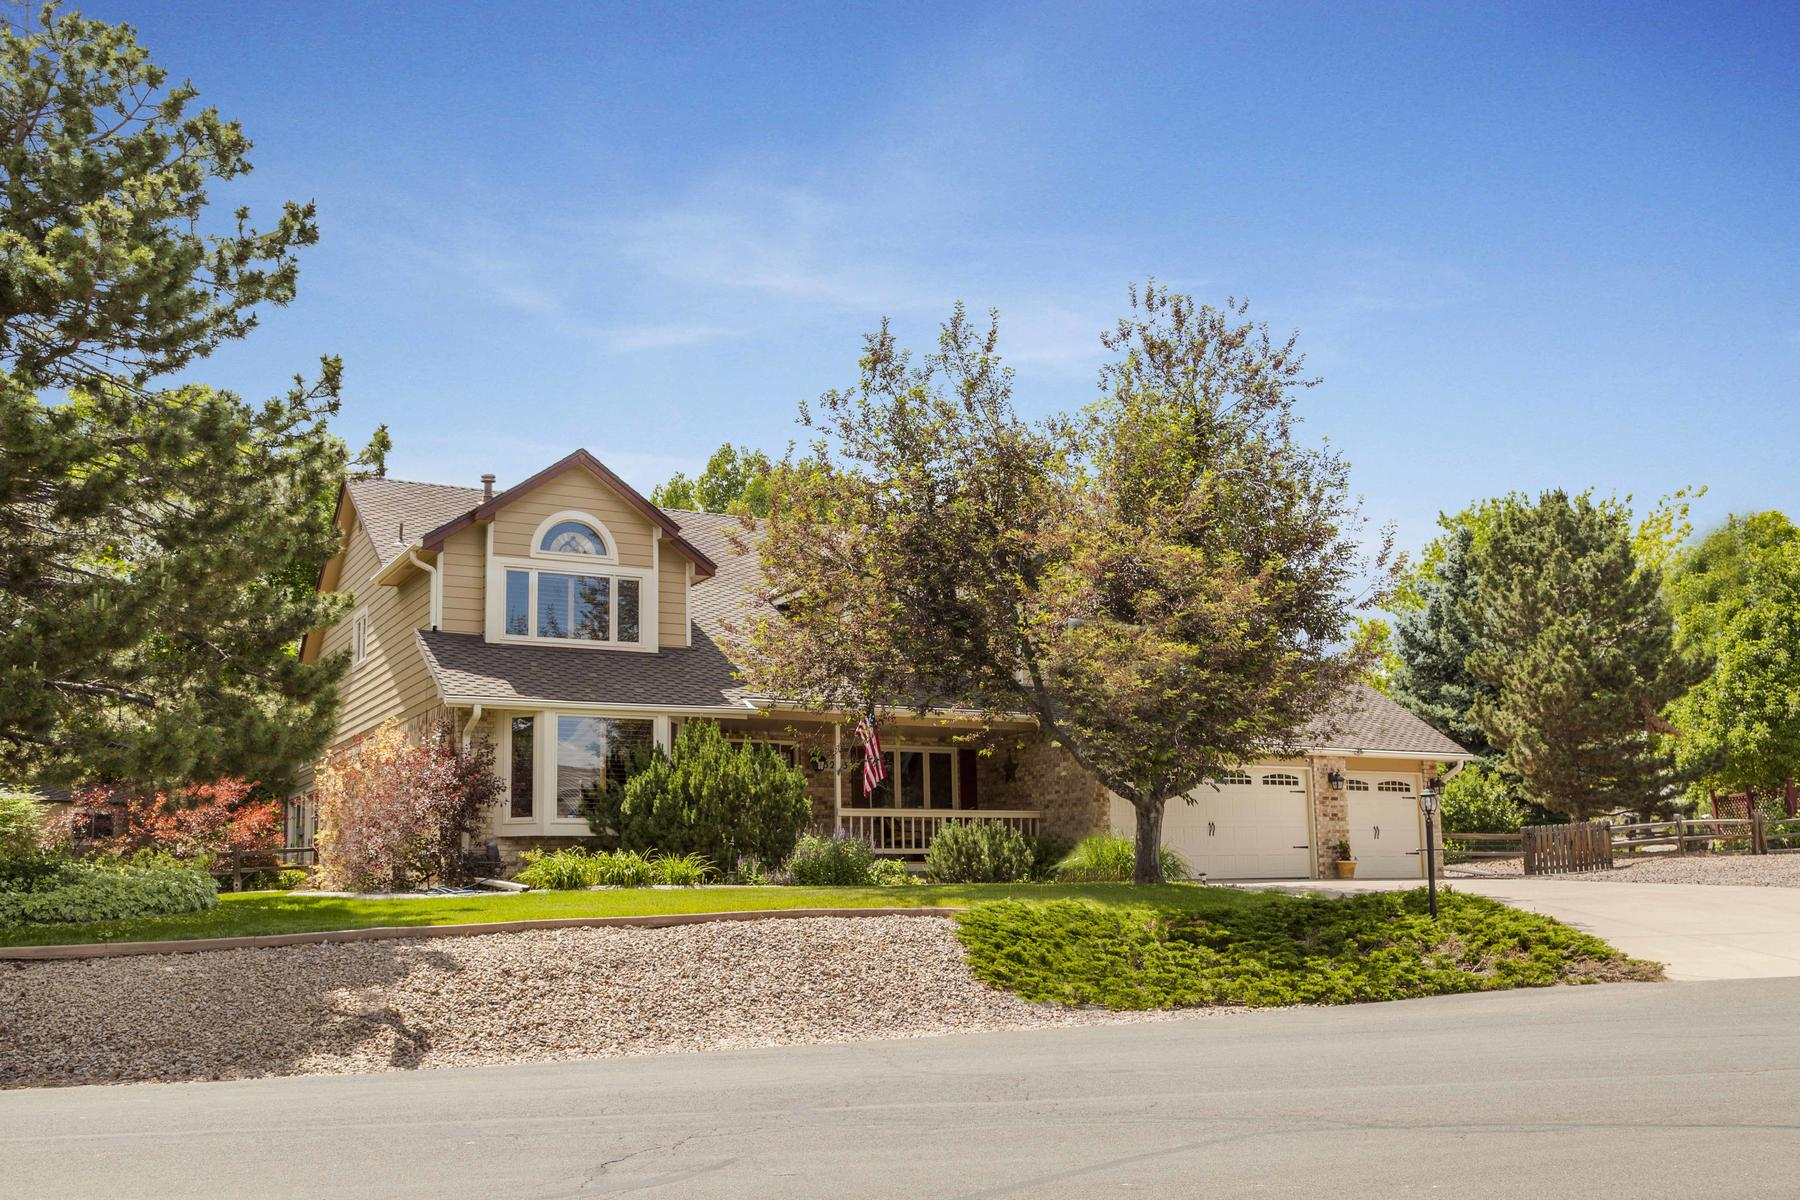 Single Family Home for Active at WOW! Belleview Acres! 5233 South Xenophon Court Littleton, Colorado 80127 United States